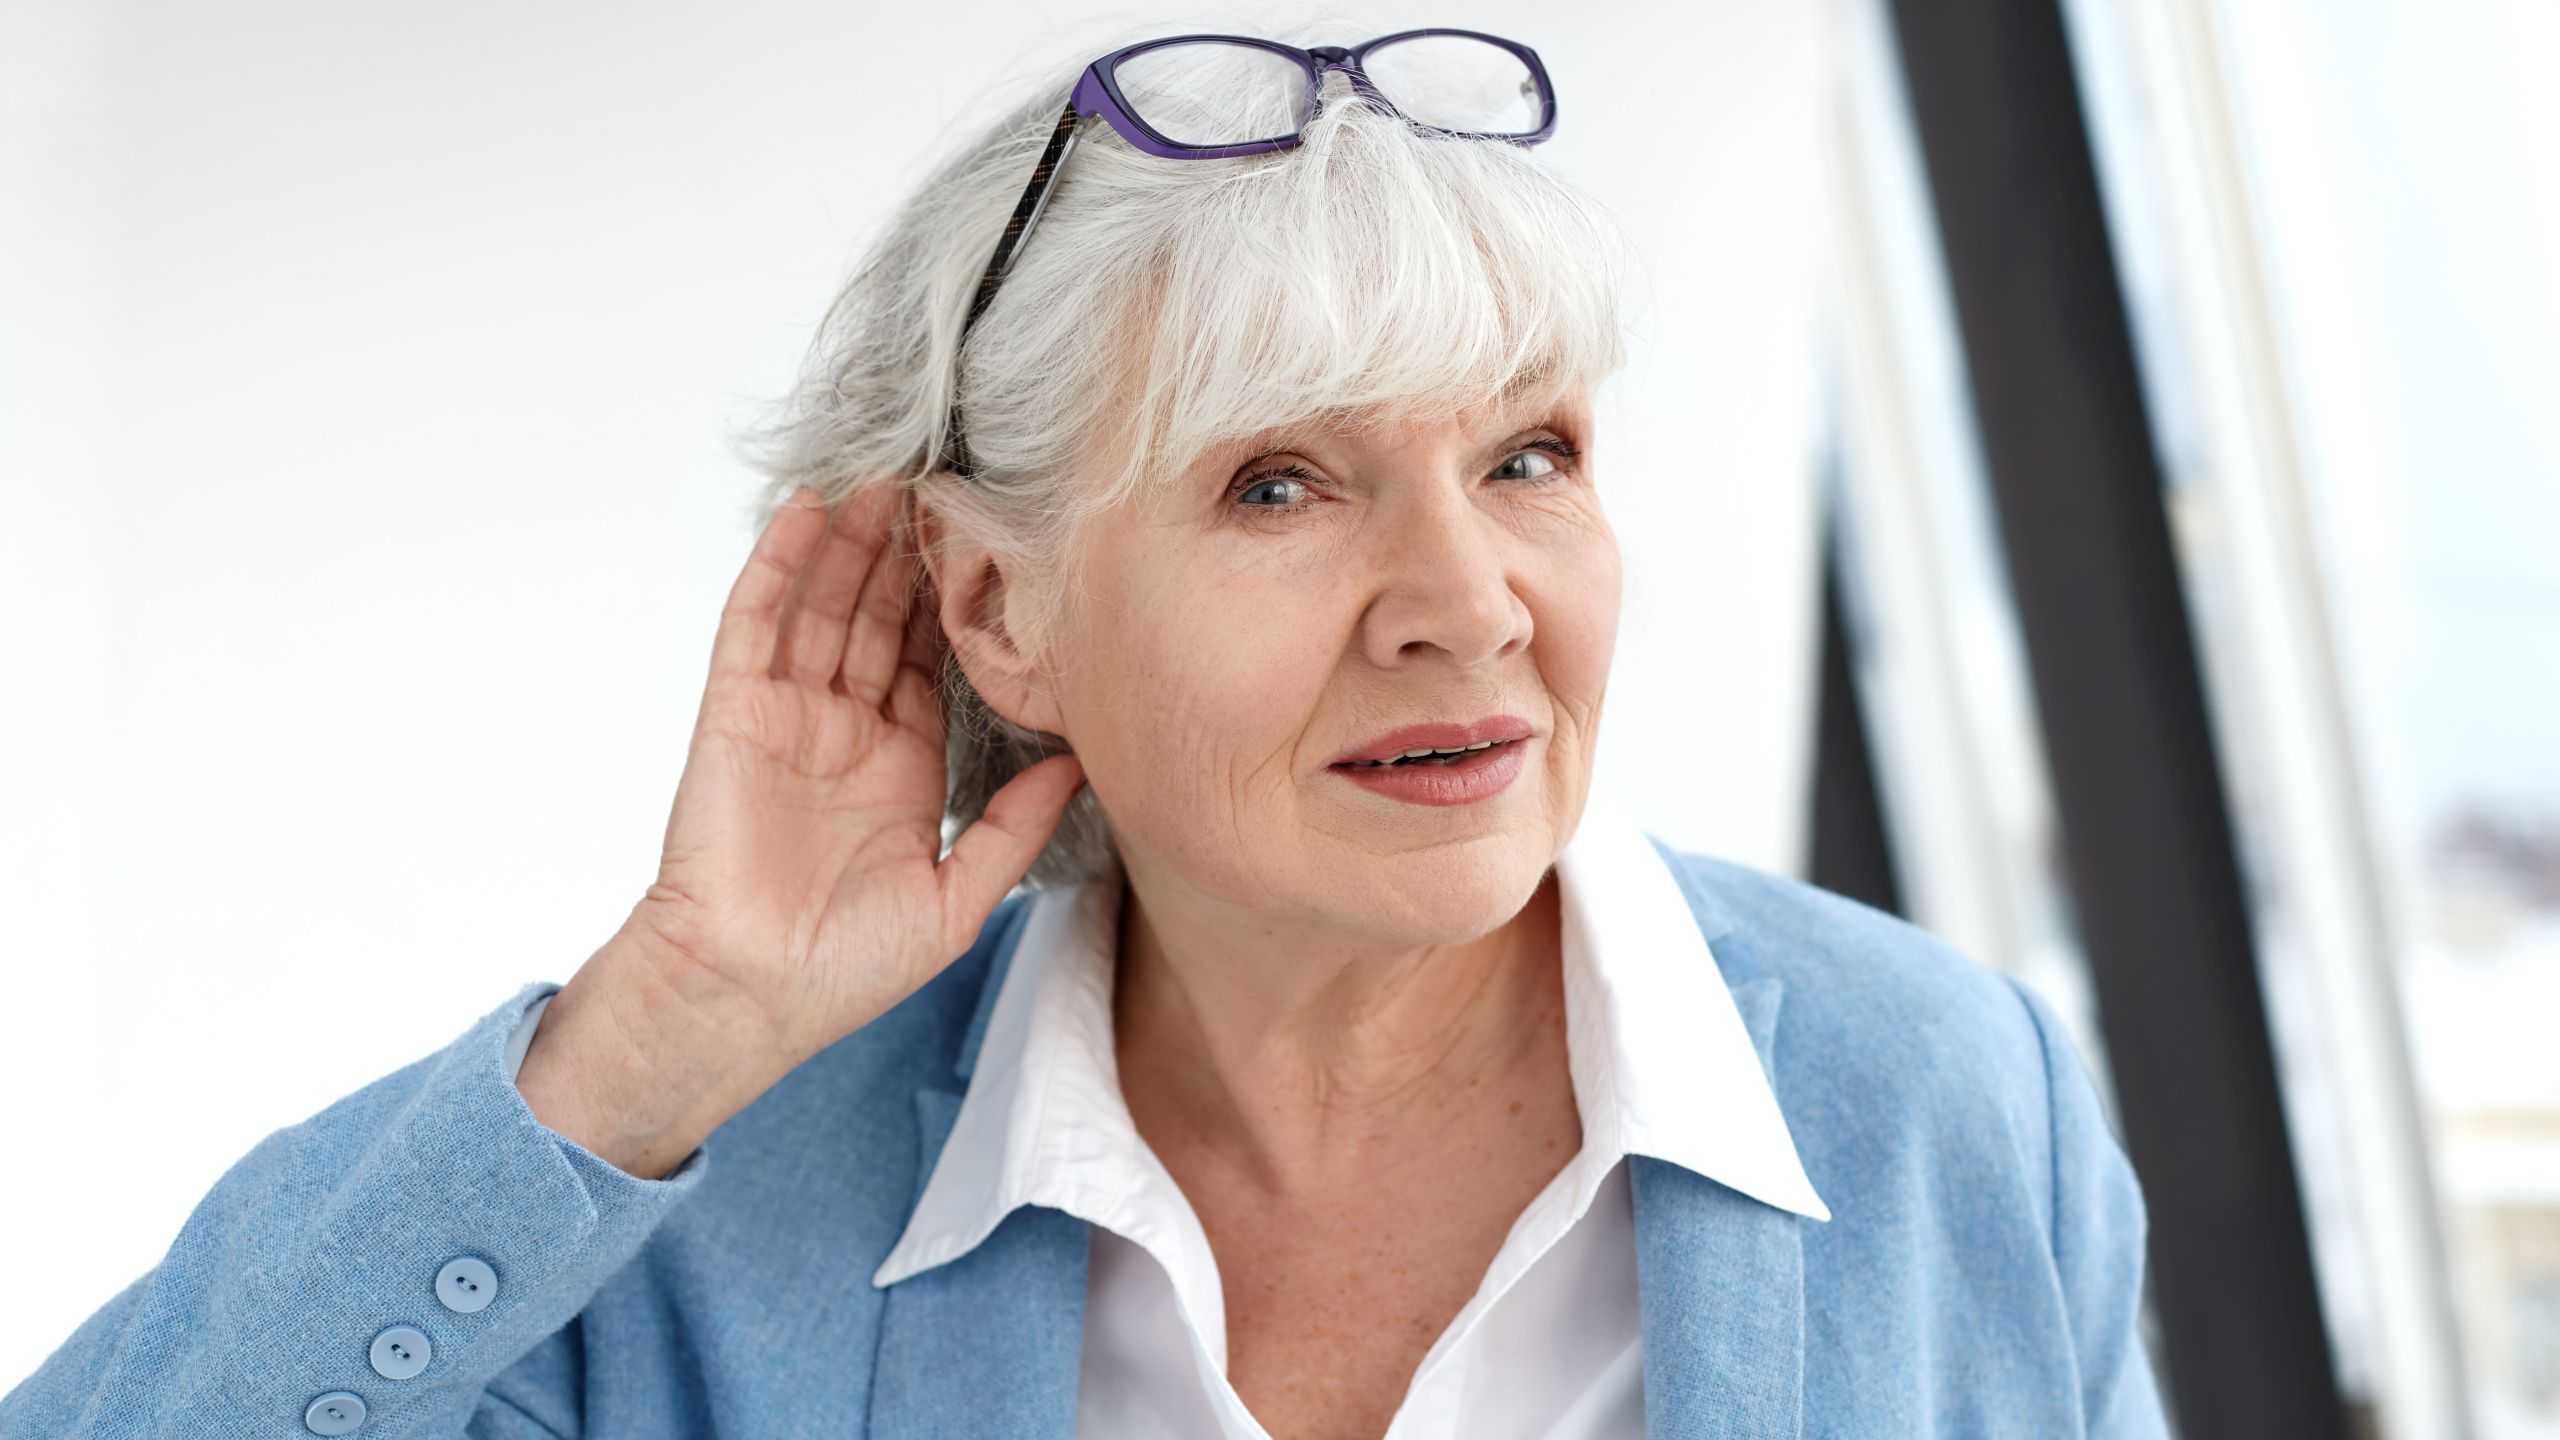 Elderly woman putting a hand behind her ear to hear better.